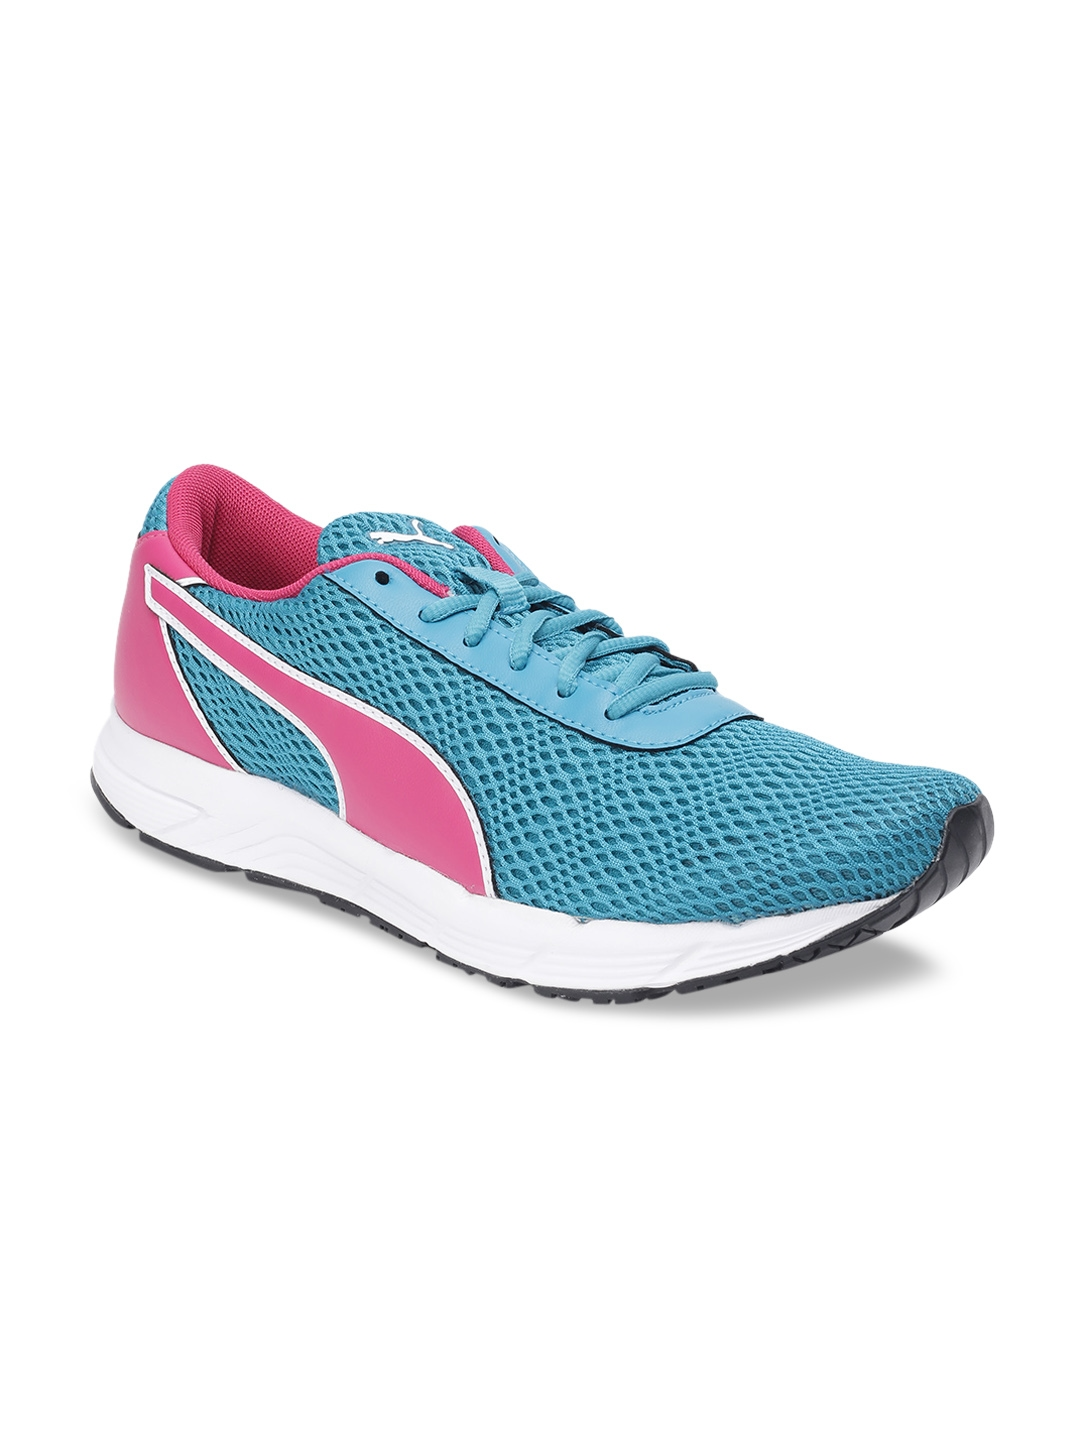 Puma Women Pink   Turquoise Blue Mesh Metal Knit IDP Wn s Running Shoes